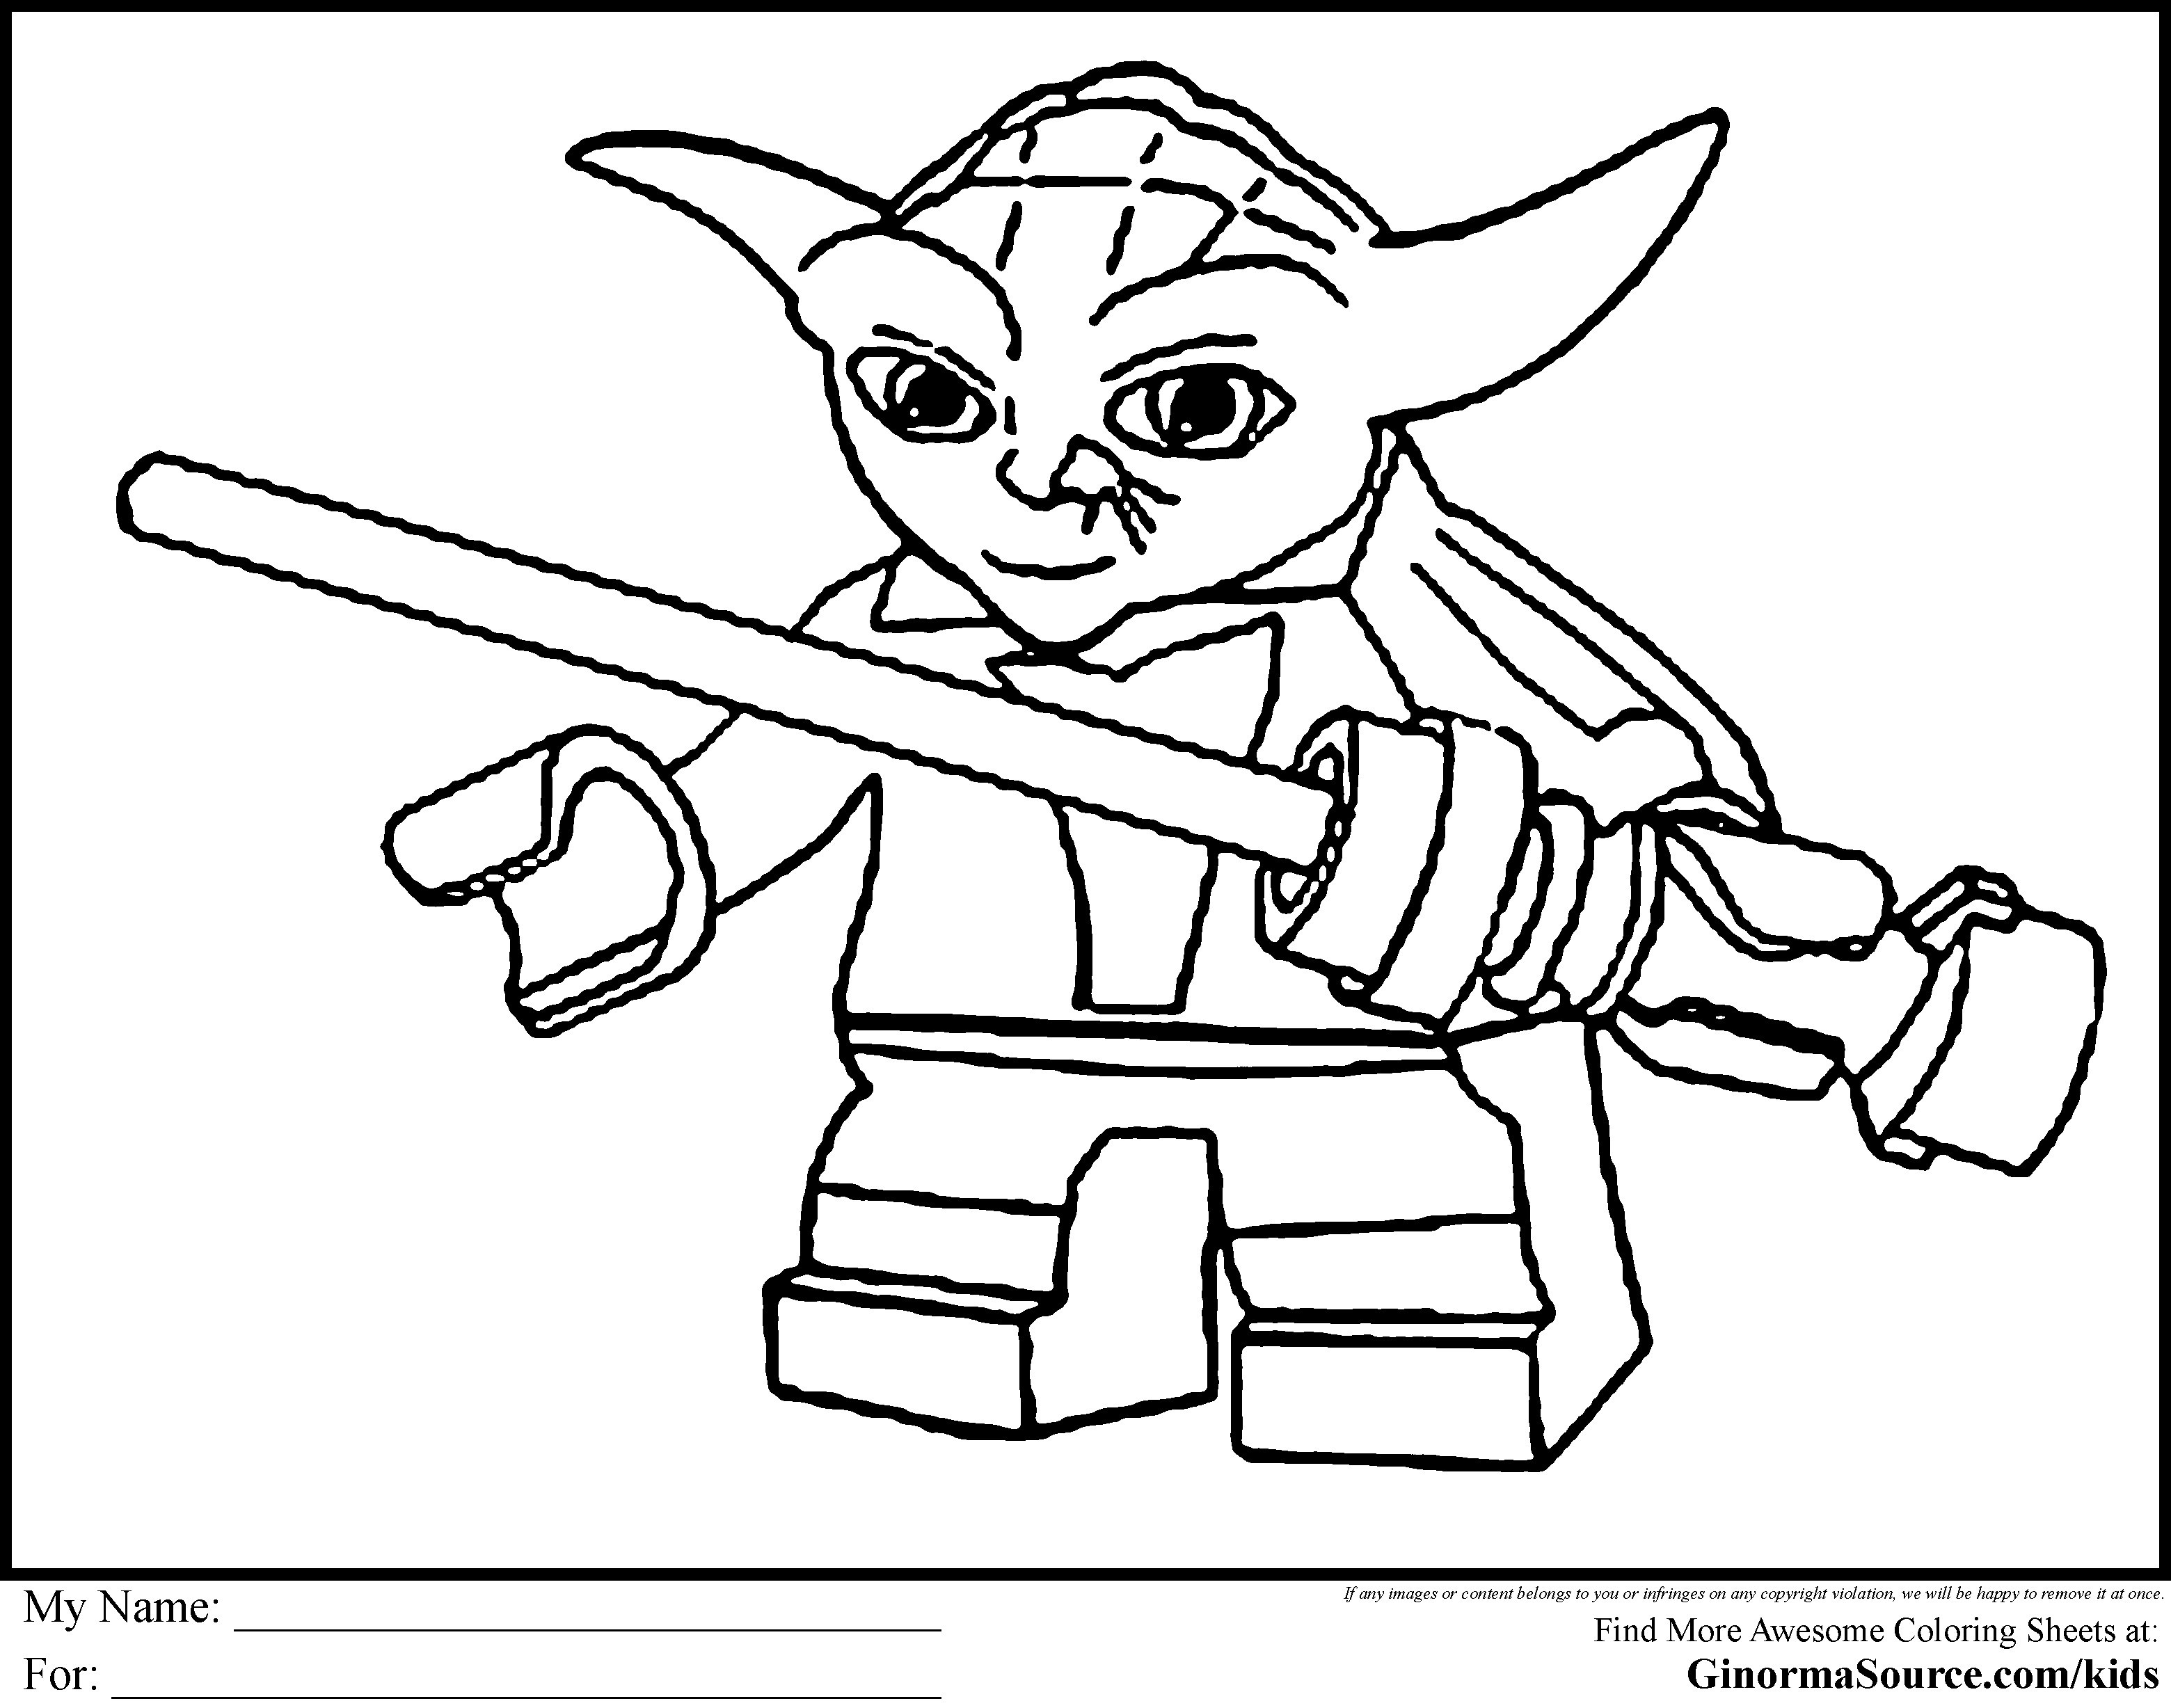 Drone Coloring Pages At Getcolorings